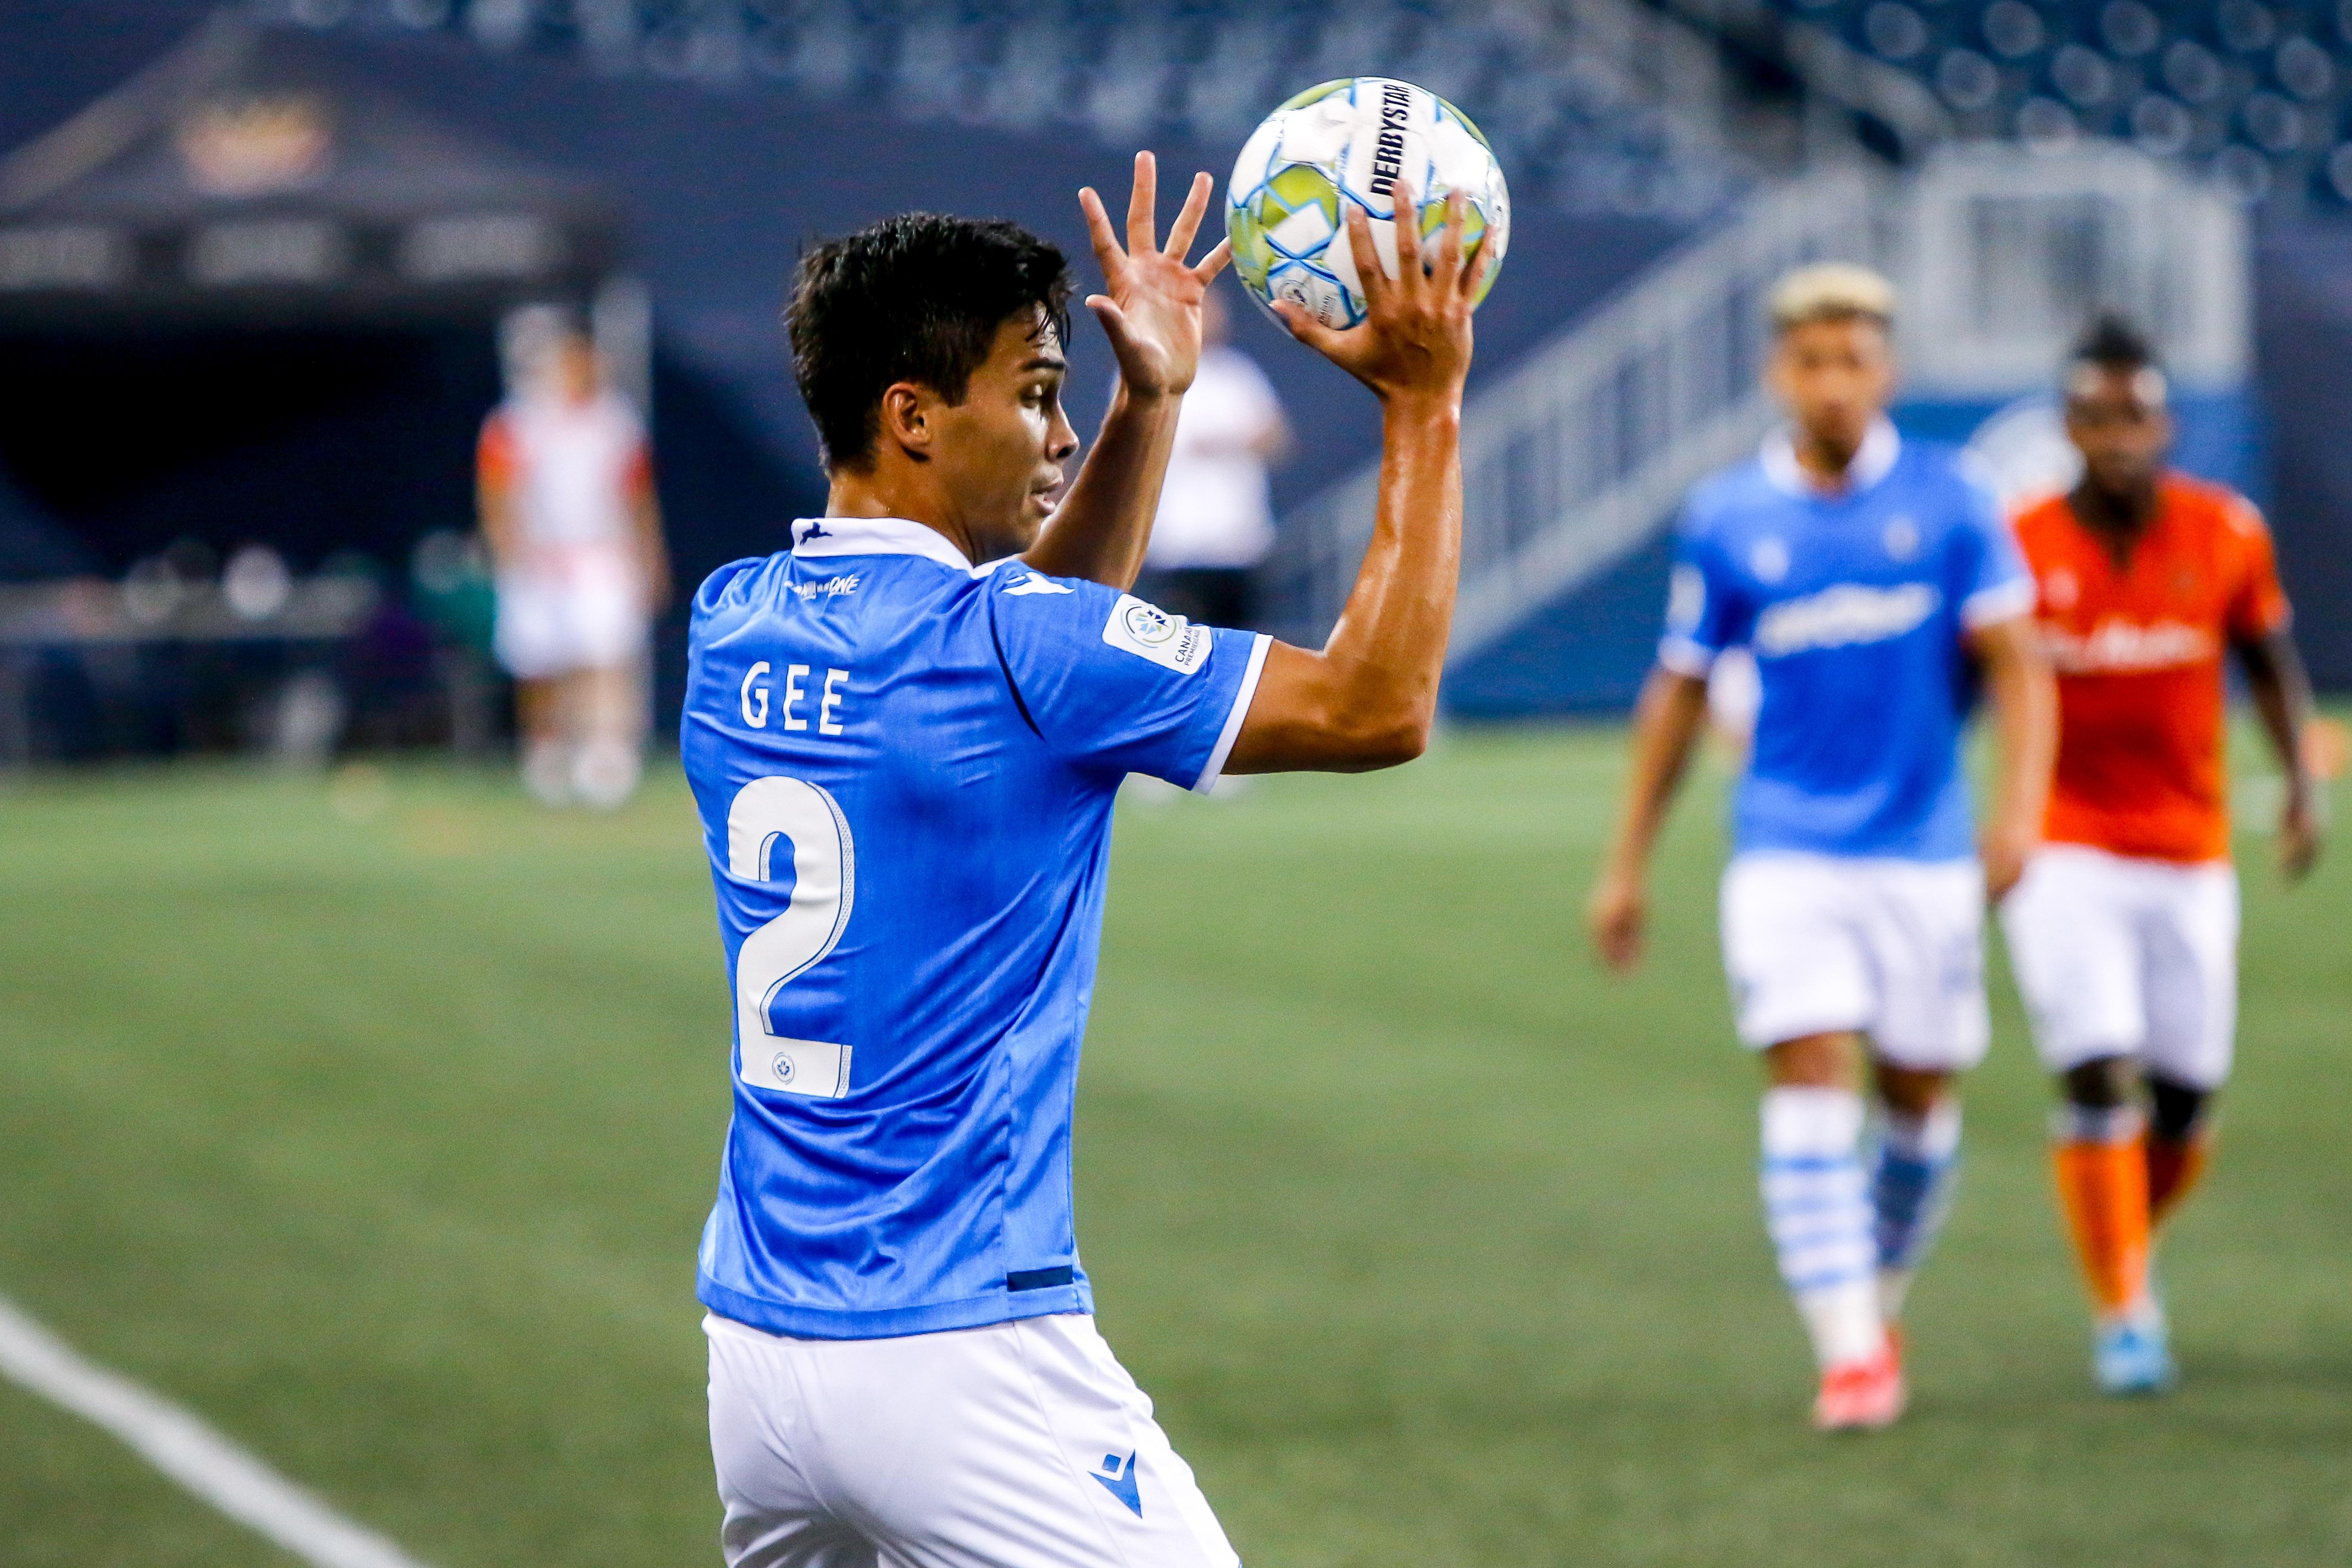 July 14, 2021. Forge FC vs FC Edmonton. First-Half. Paris Gee of FC Edmonton gets set to throw the ball into play.